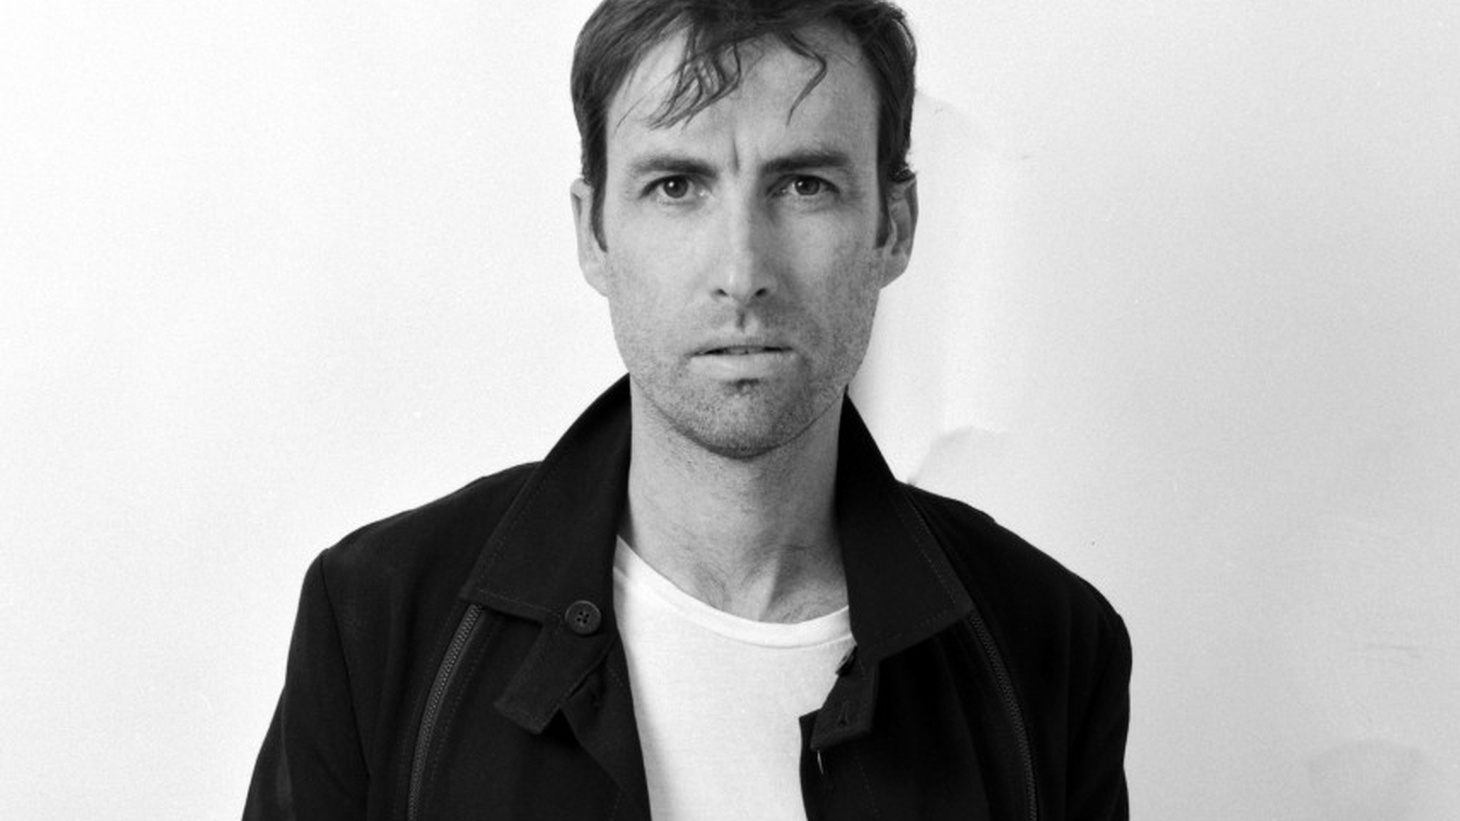 Andrew Bird's latest album is his most unguarded and personal, reflecting exciting changes in his personal life. Now married and with a young son, the singer takes big leaps in his musical expression as well.